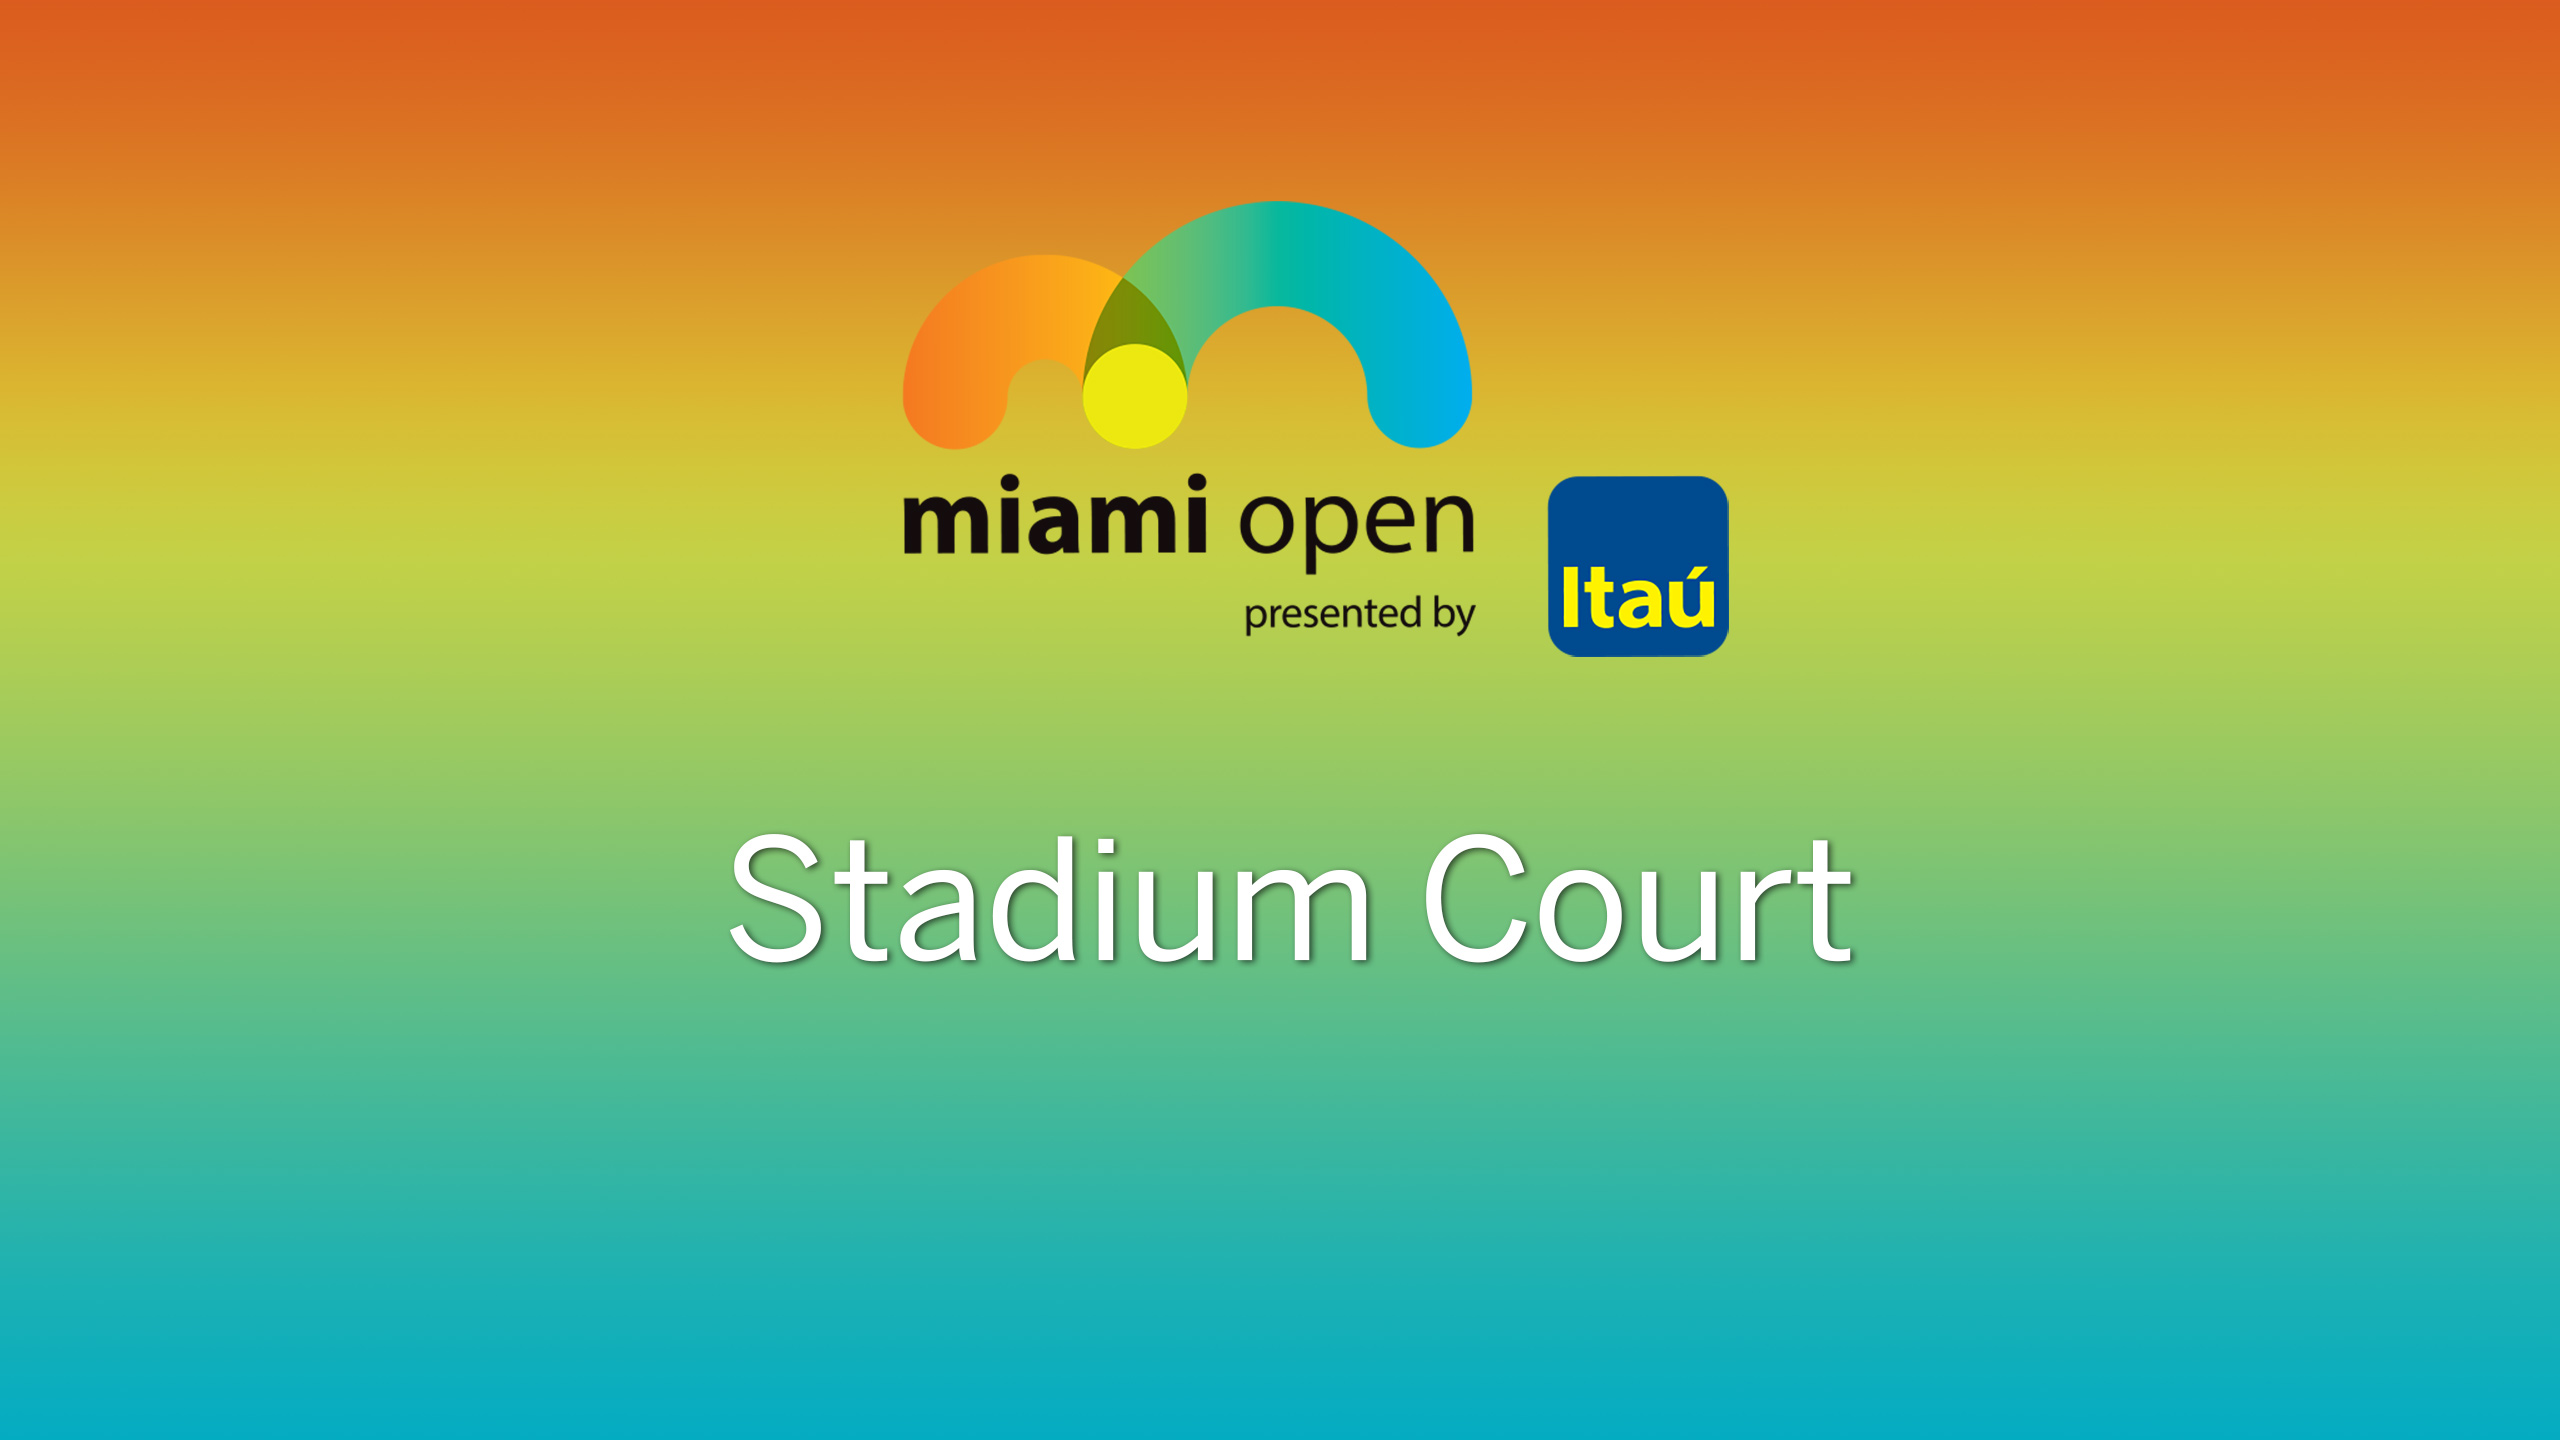 WTA: Stadium Court - Miami Open